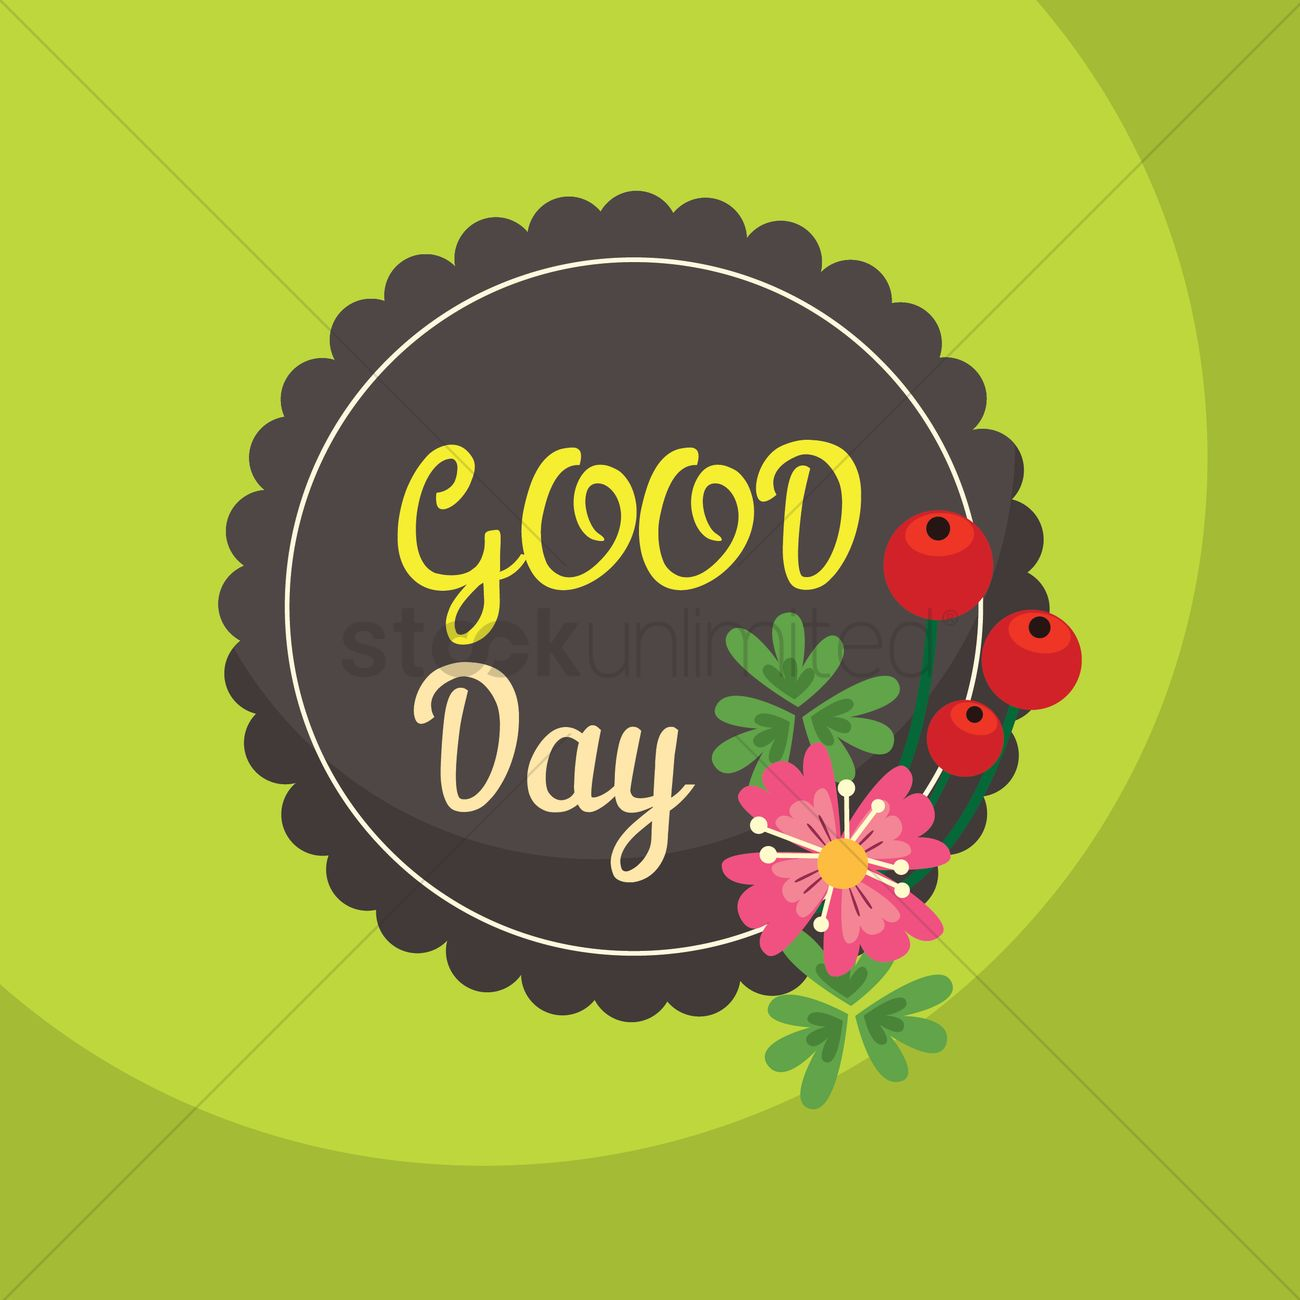 Good day greeting vector image 1811308 stockunlimited good day greeting vector graphic kristyandbryce Gallery